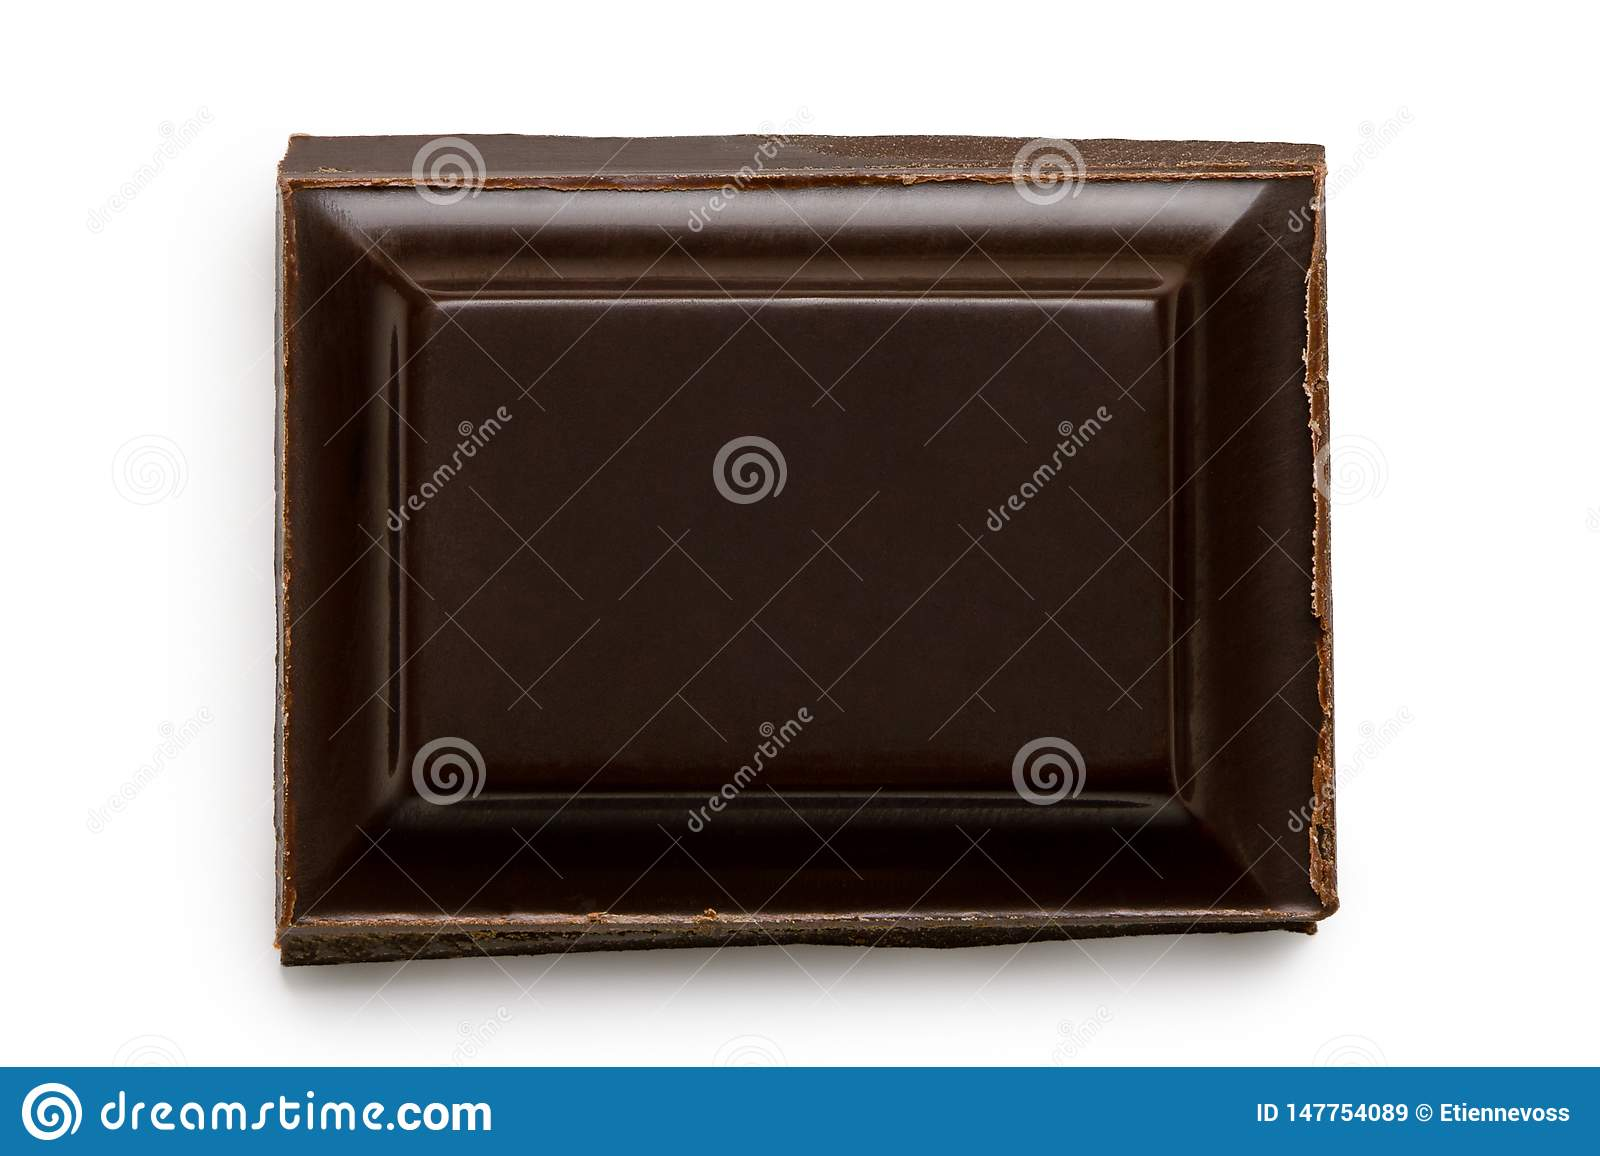 Single square of dark chocolate isolated on white from above